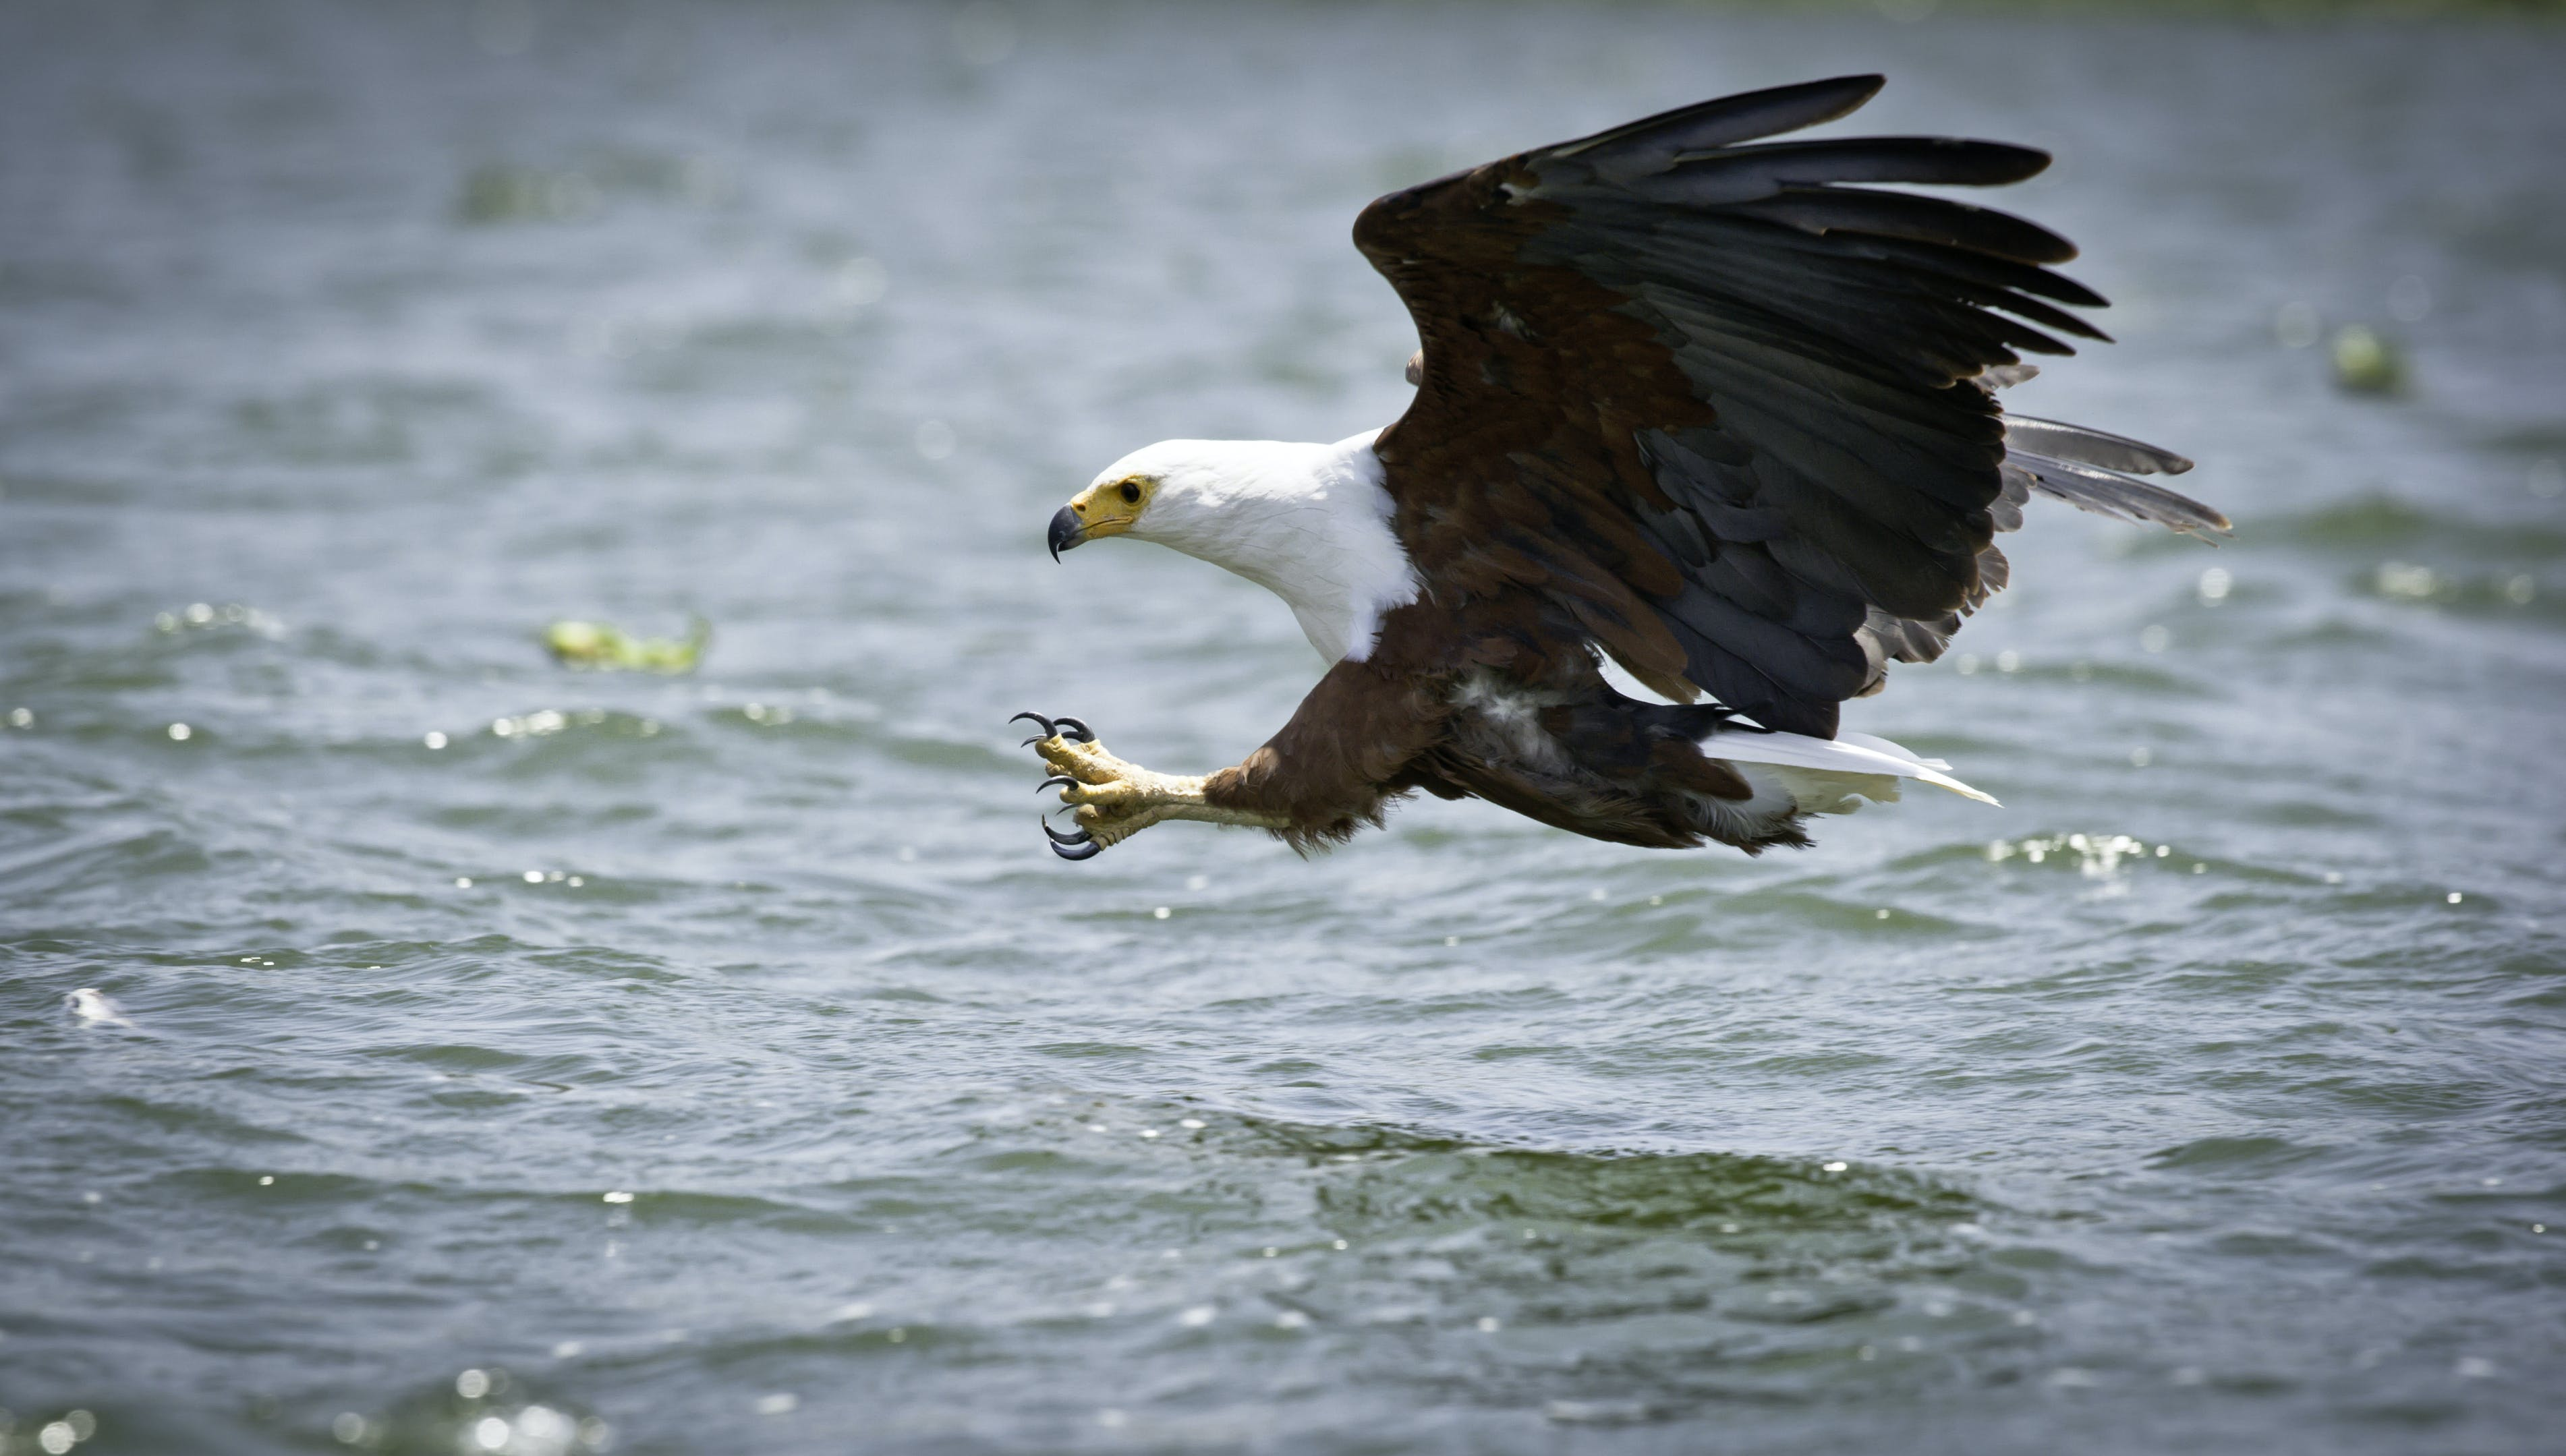 Eagle Catching for Fish